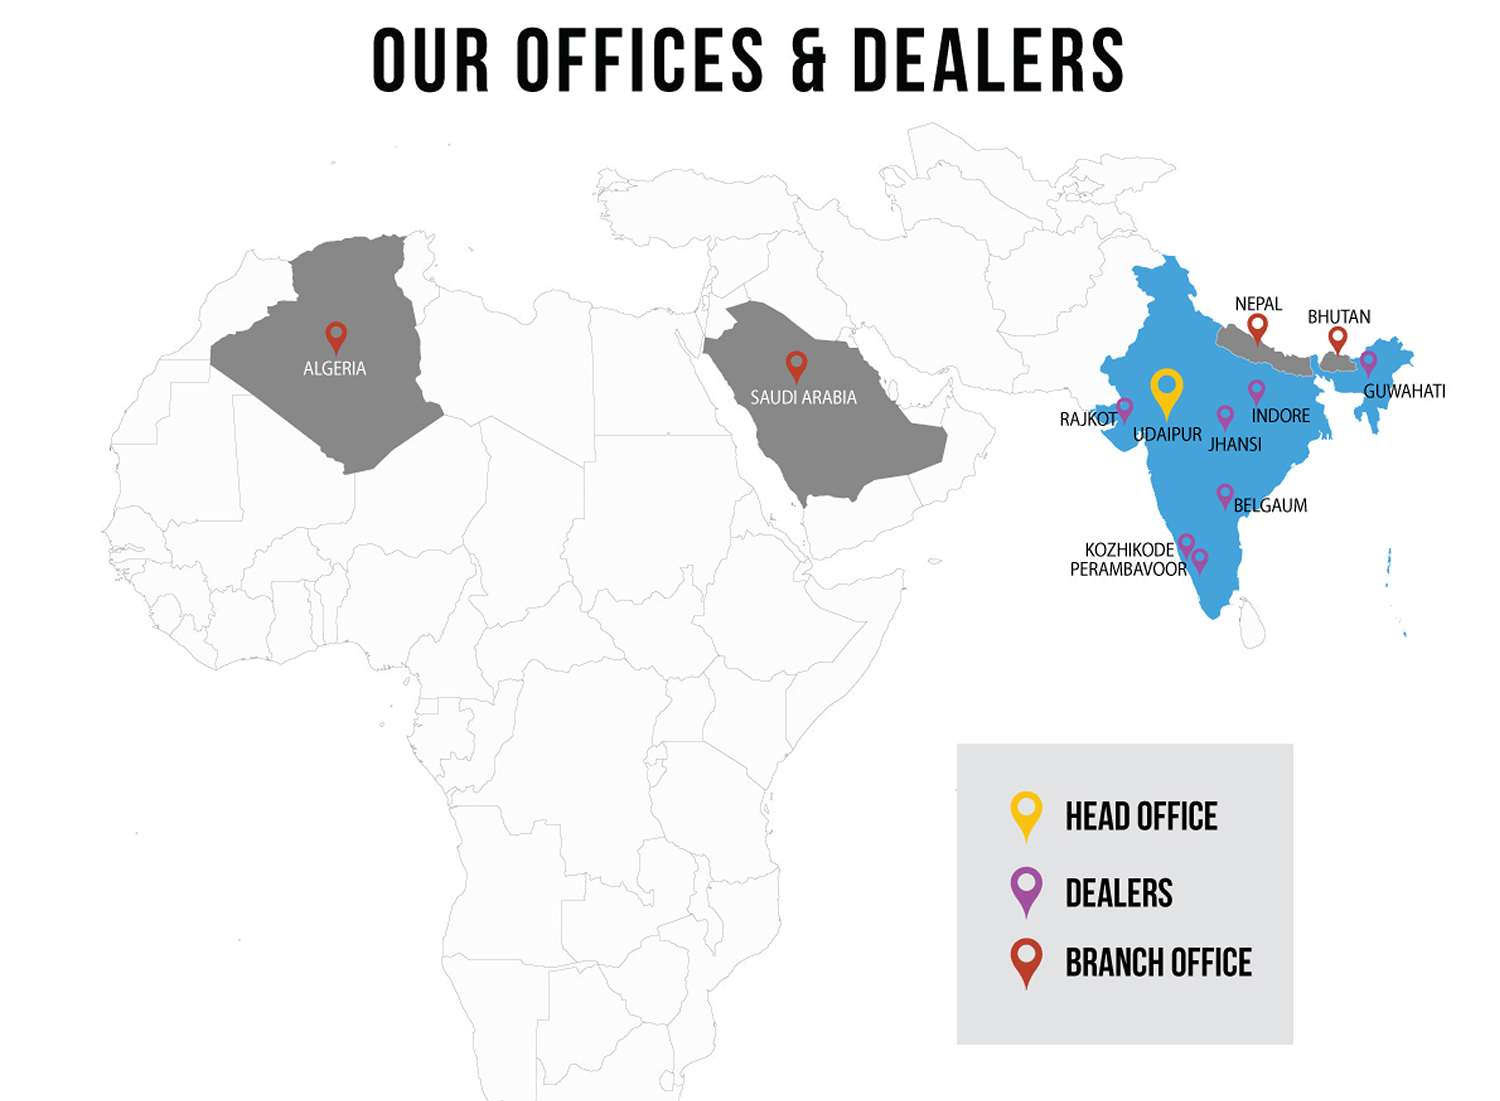 Mewar Hi-Tech Offices & Dealers